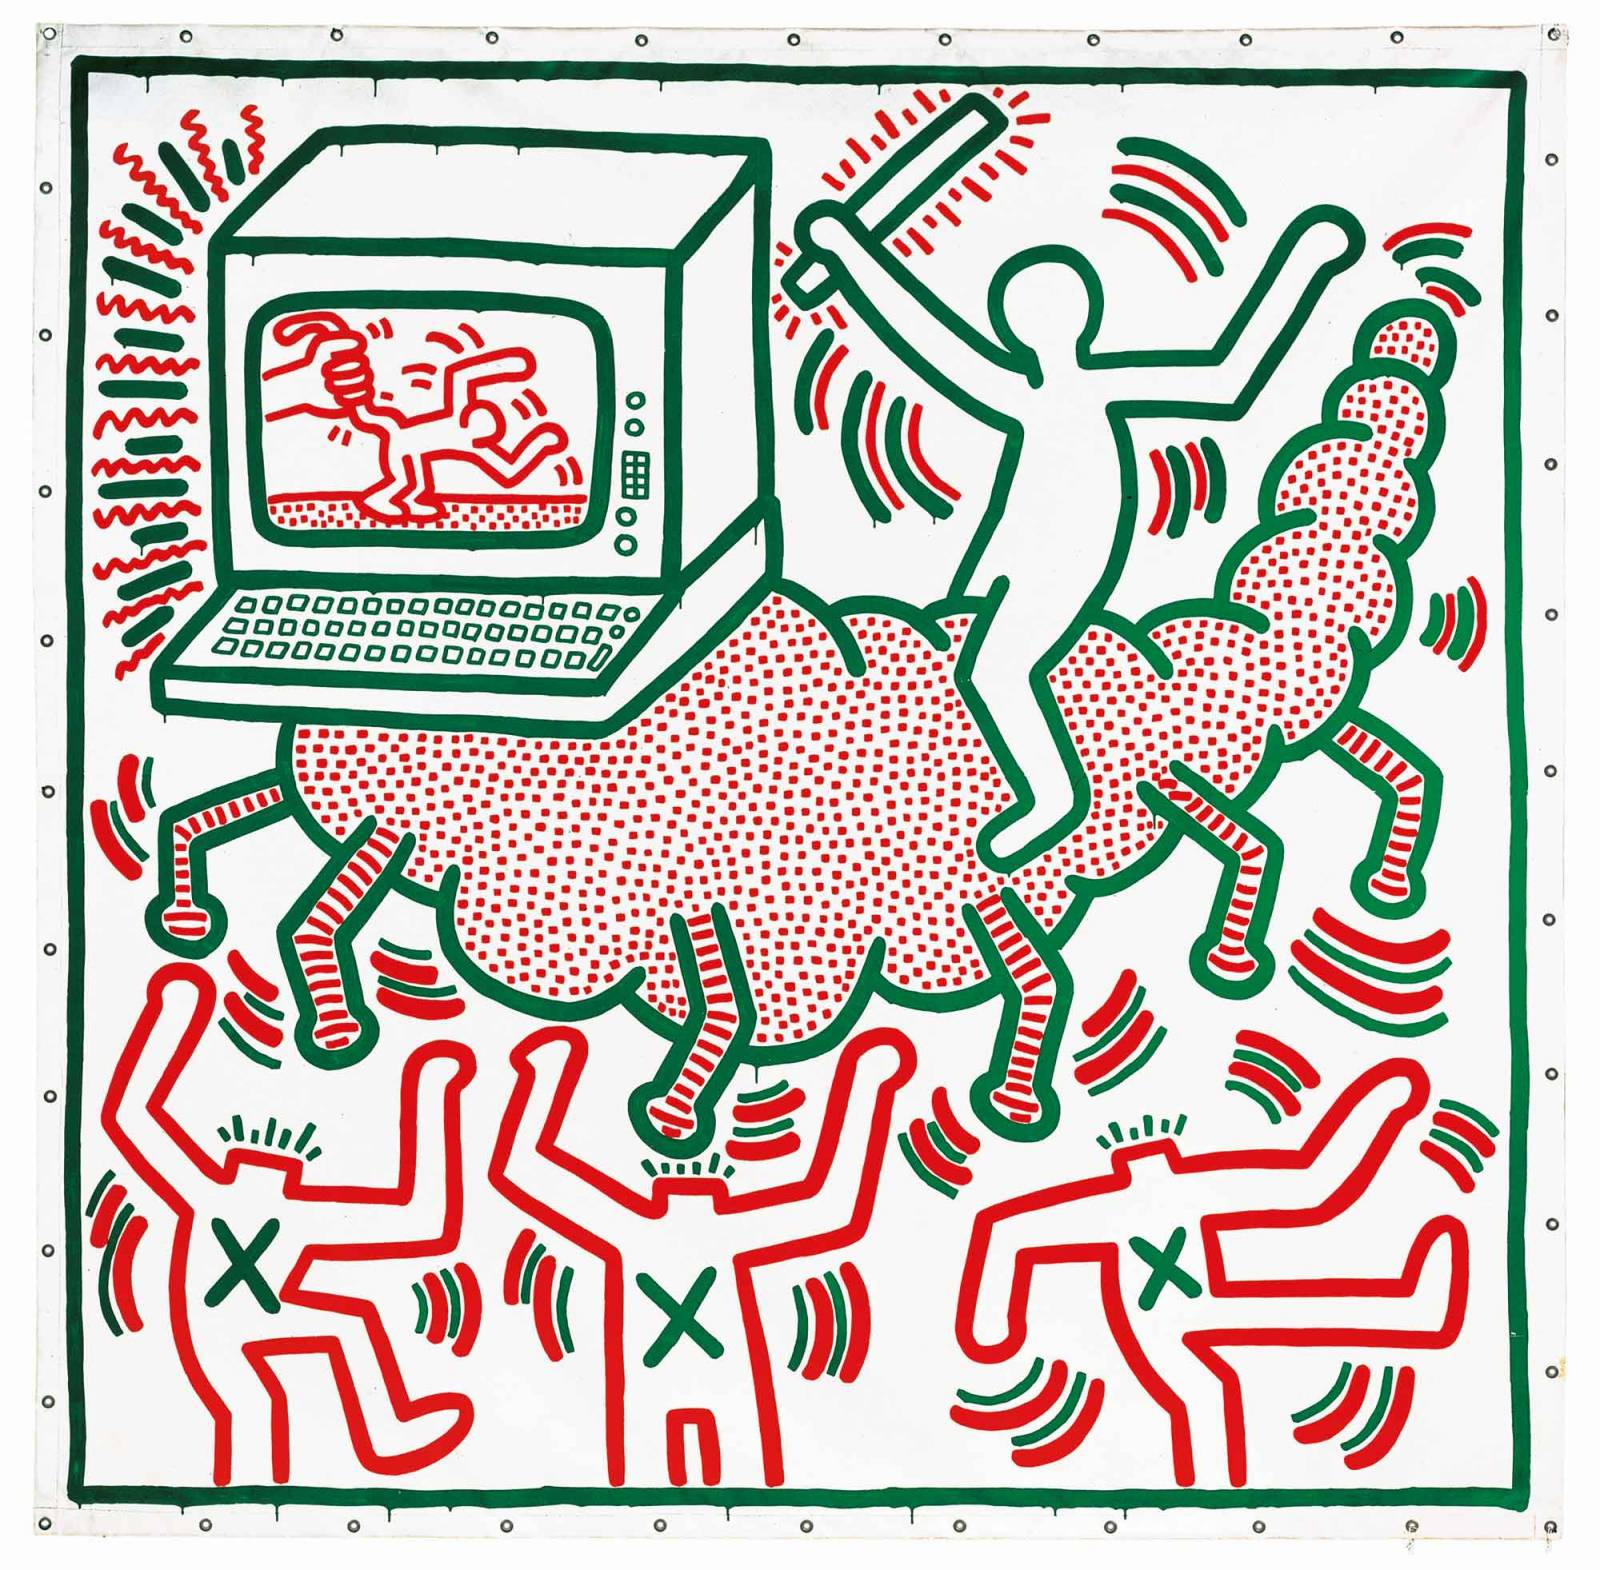 """Bez tytułu"", Keith Haring, 1983 (Fot. Collection of KAWS)"